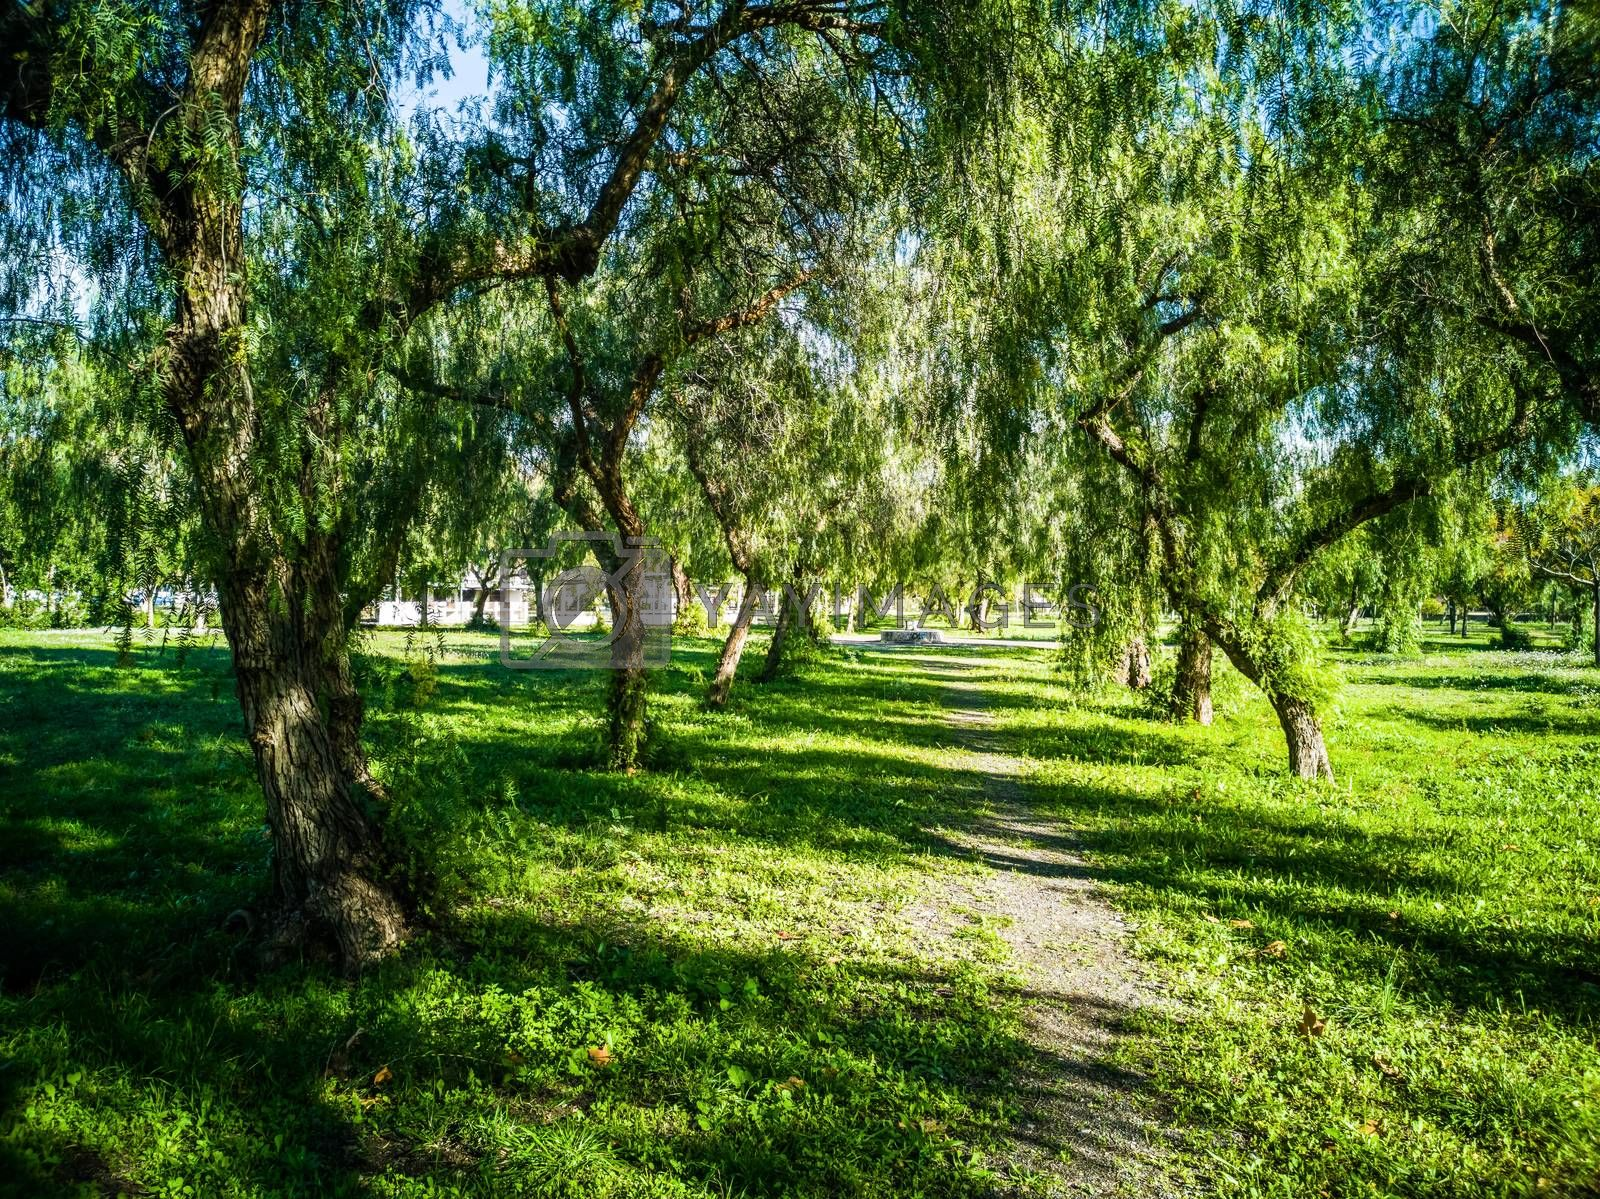 View of very green trees and grass in a large park of Puerto de Sagunto